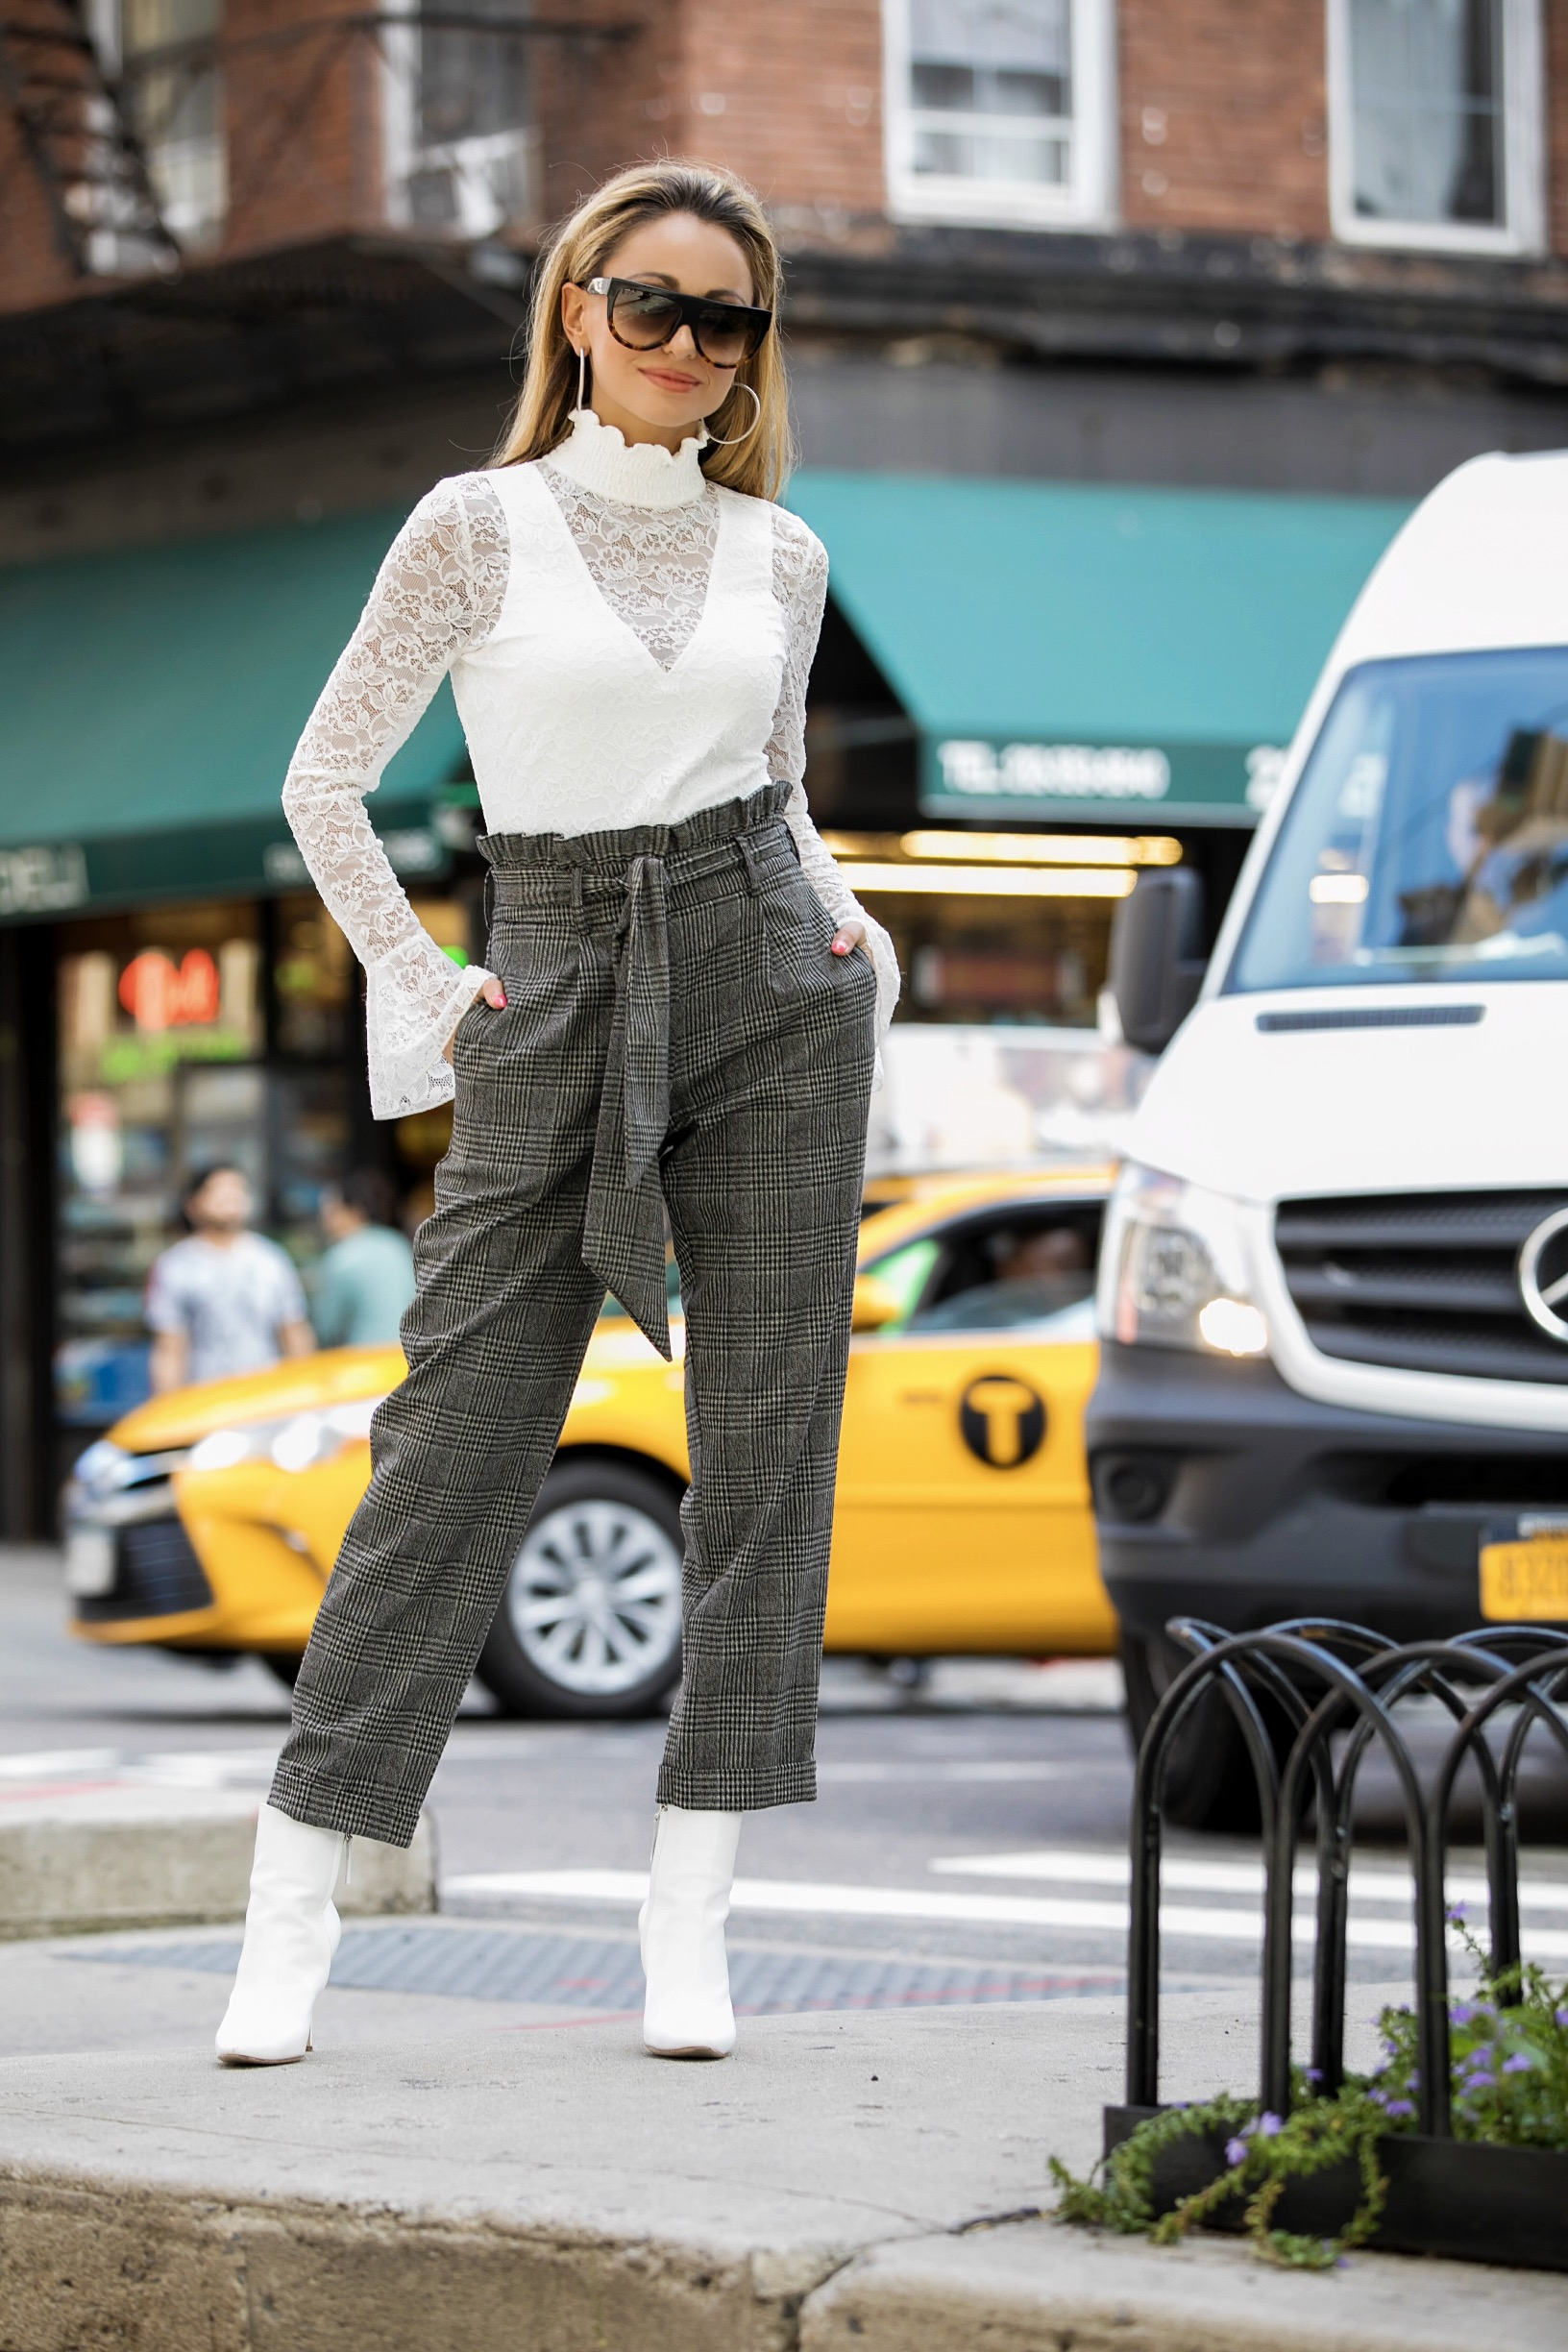 lauren recchia in intermix lace bodysuit, topshop mensy trousers, and manolo blahnik booties